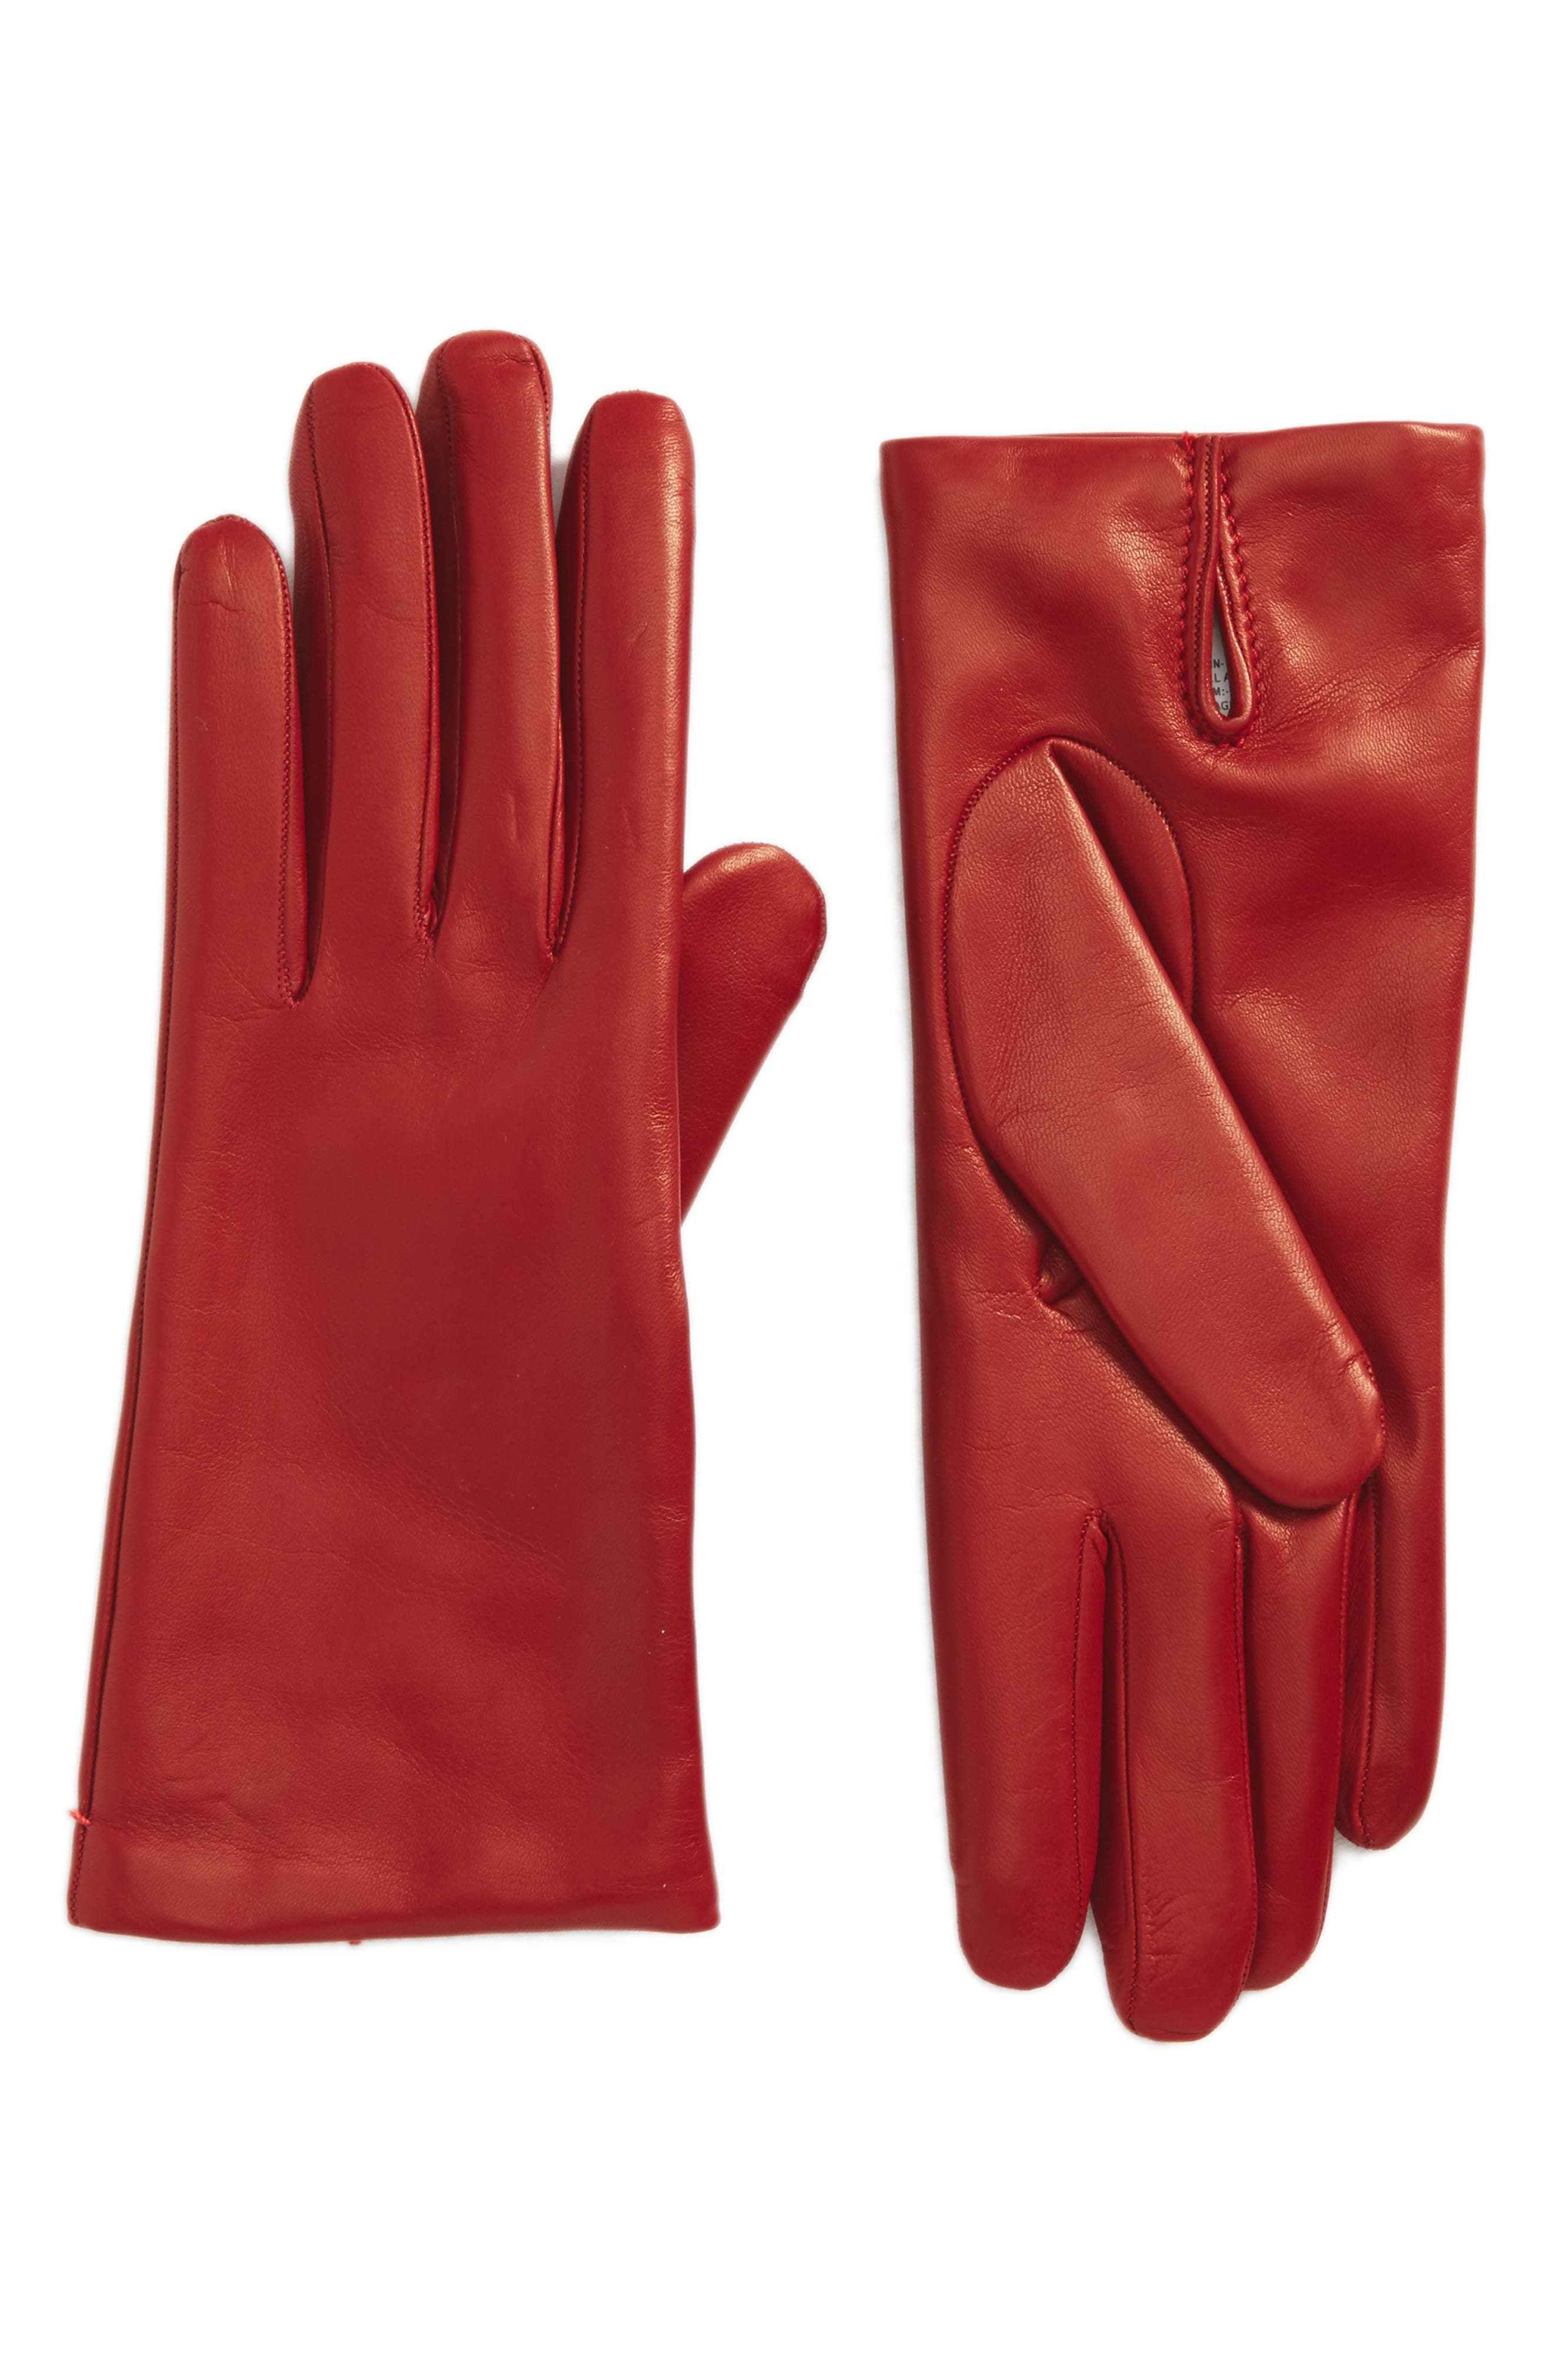 Ragusa Leather Gloves,                             Main thumbnail 1, color,                             Red